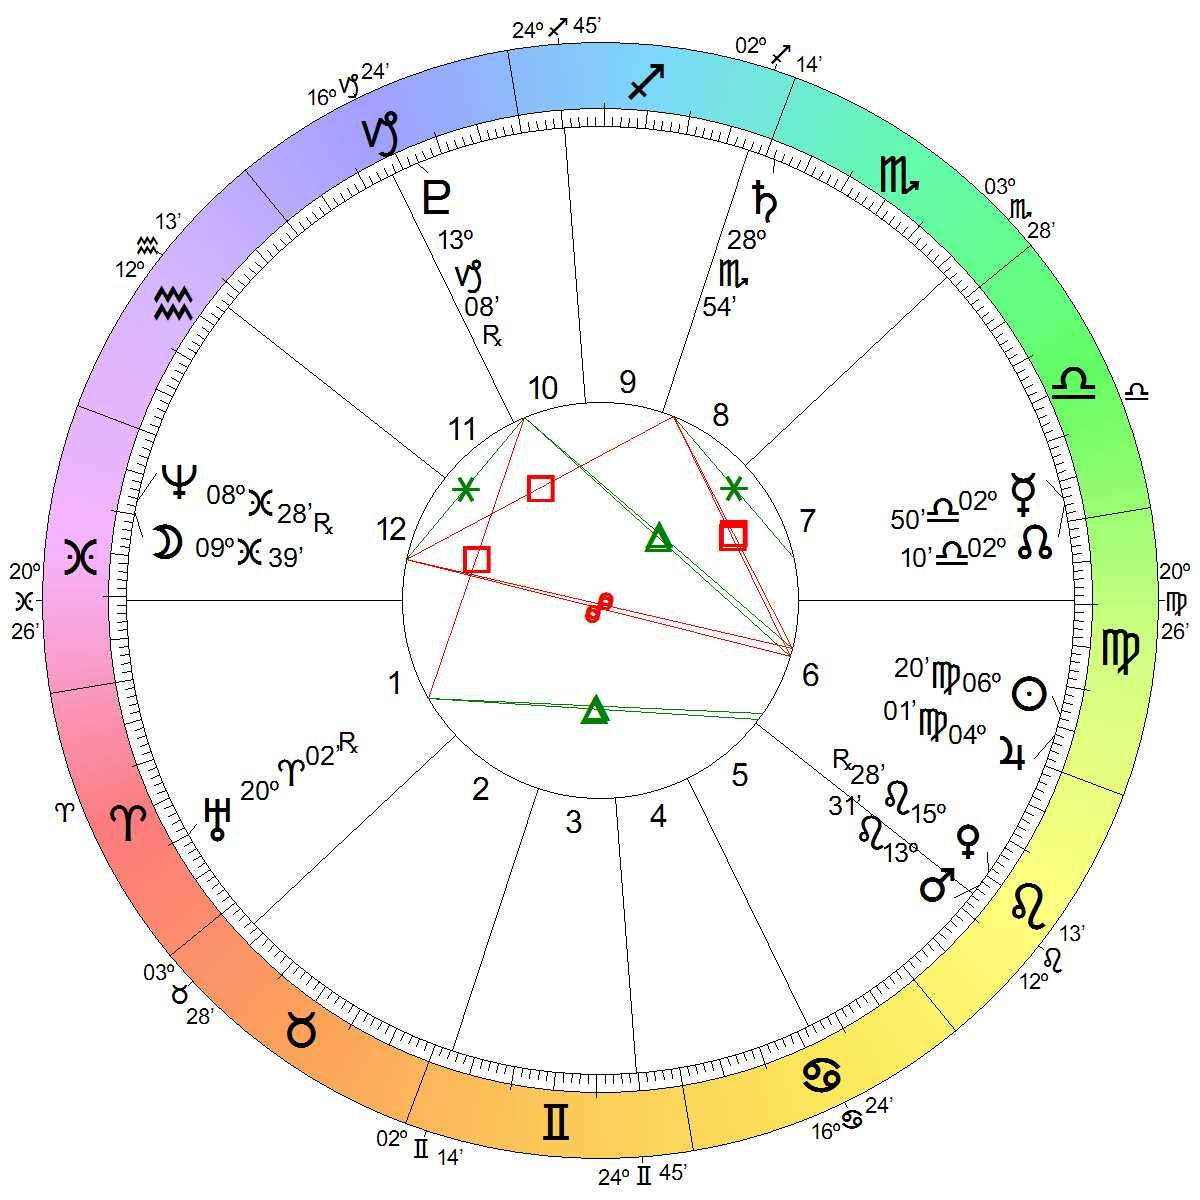 Super moon full moon august 29 2015 astrologyland chart wheel super moon full moon august 29 2015 astrologyland chart wheel free astrology charthoroscope geenschuldenfo Gallery